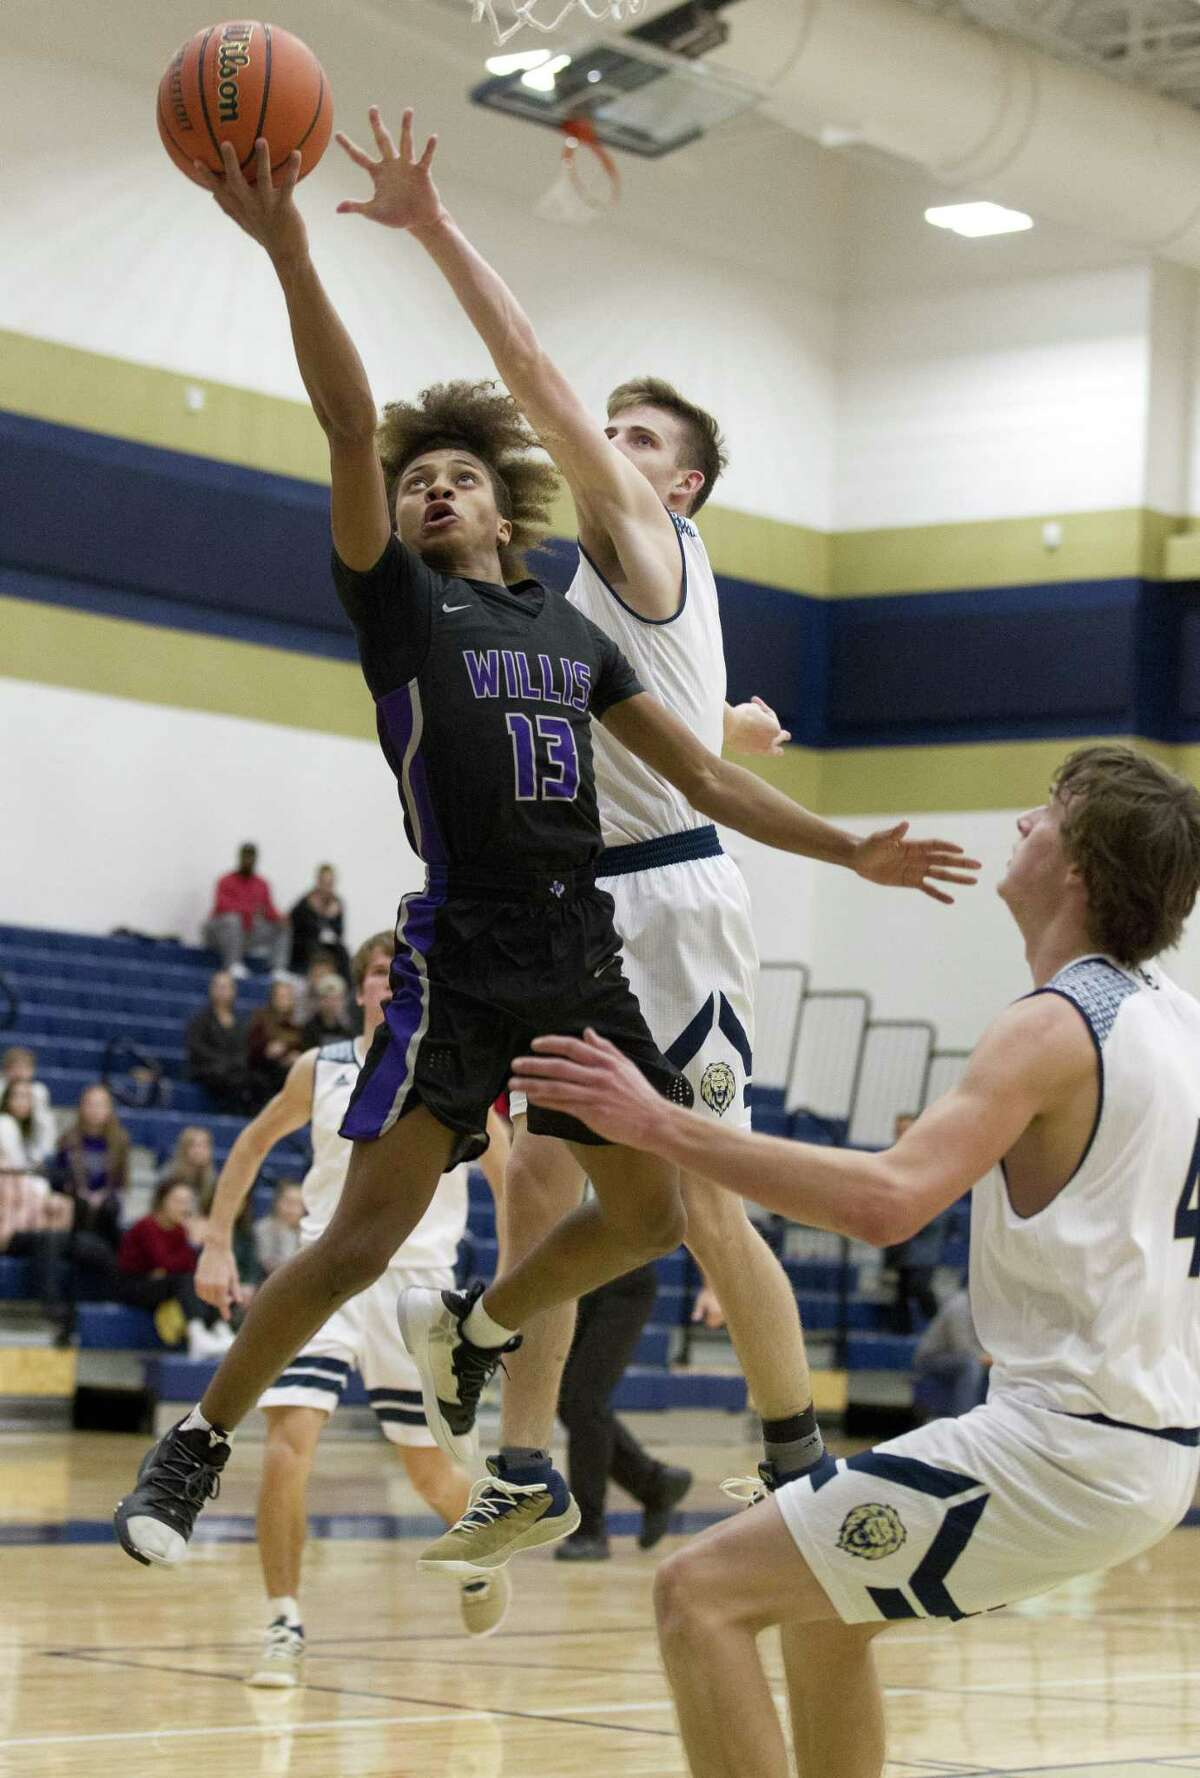 Willis point guard D'Shawn Woods (13) makes a shot past Lake Creek point guard Pierce Spencer (5) during the third quarter of a District 20-5A high school basketball game, Tuesday, Jan 29, 2019, in Montgomery.